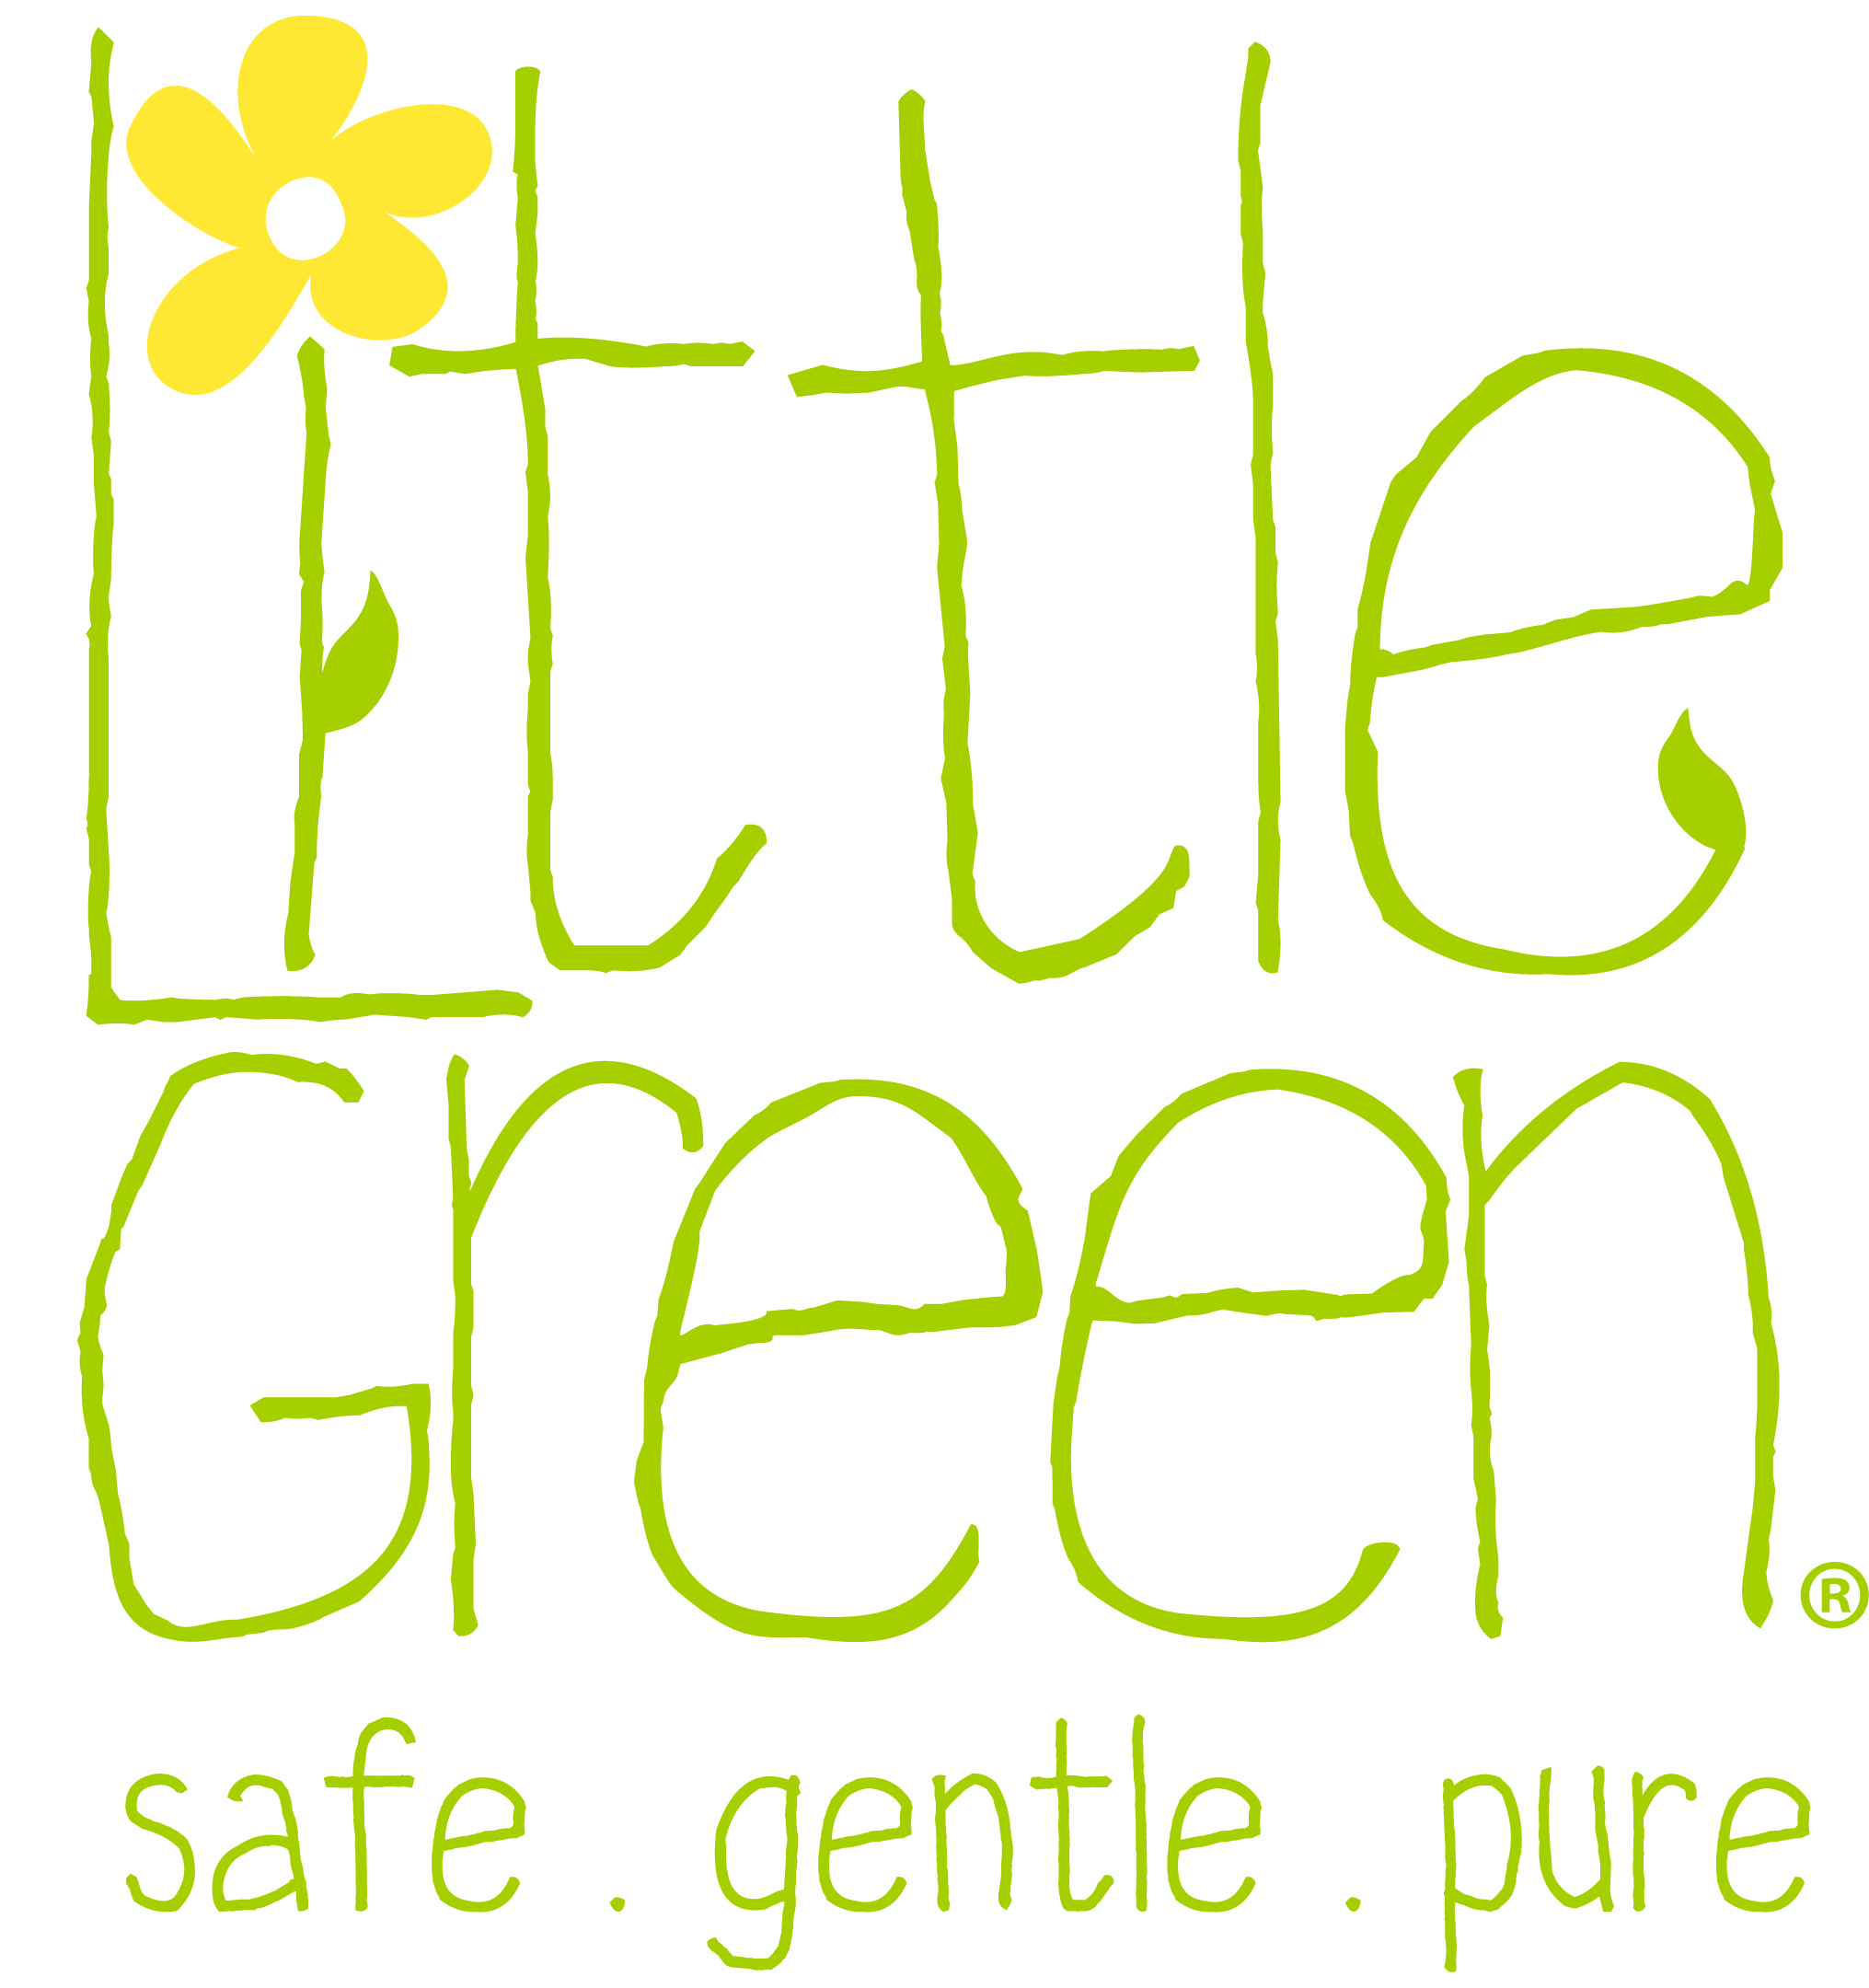 logo little green (2) - Katherine Ledesma.jpg